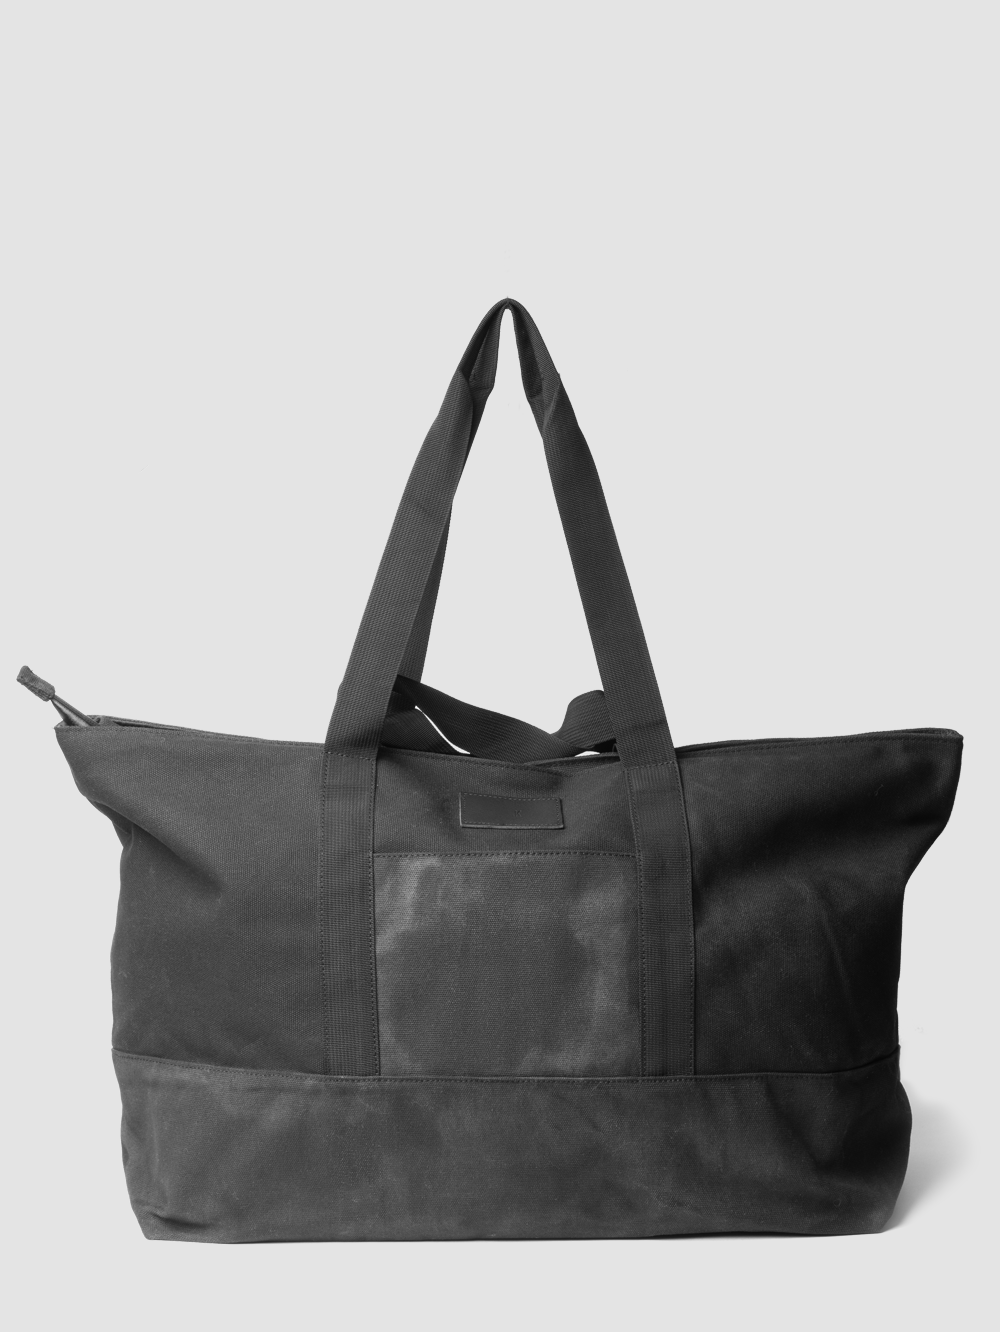 Oak Hancock Travel Tote